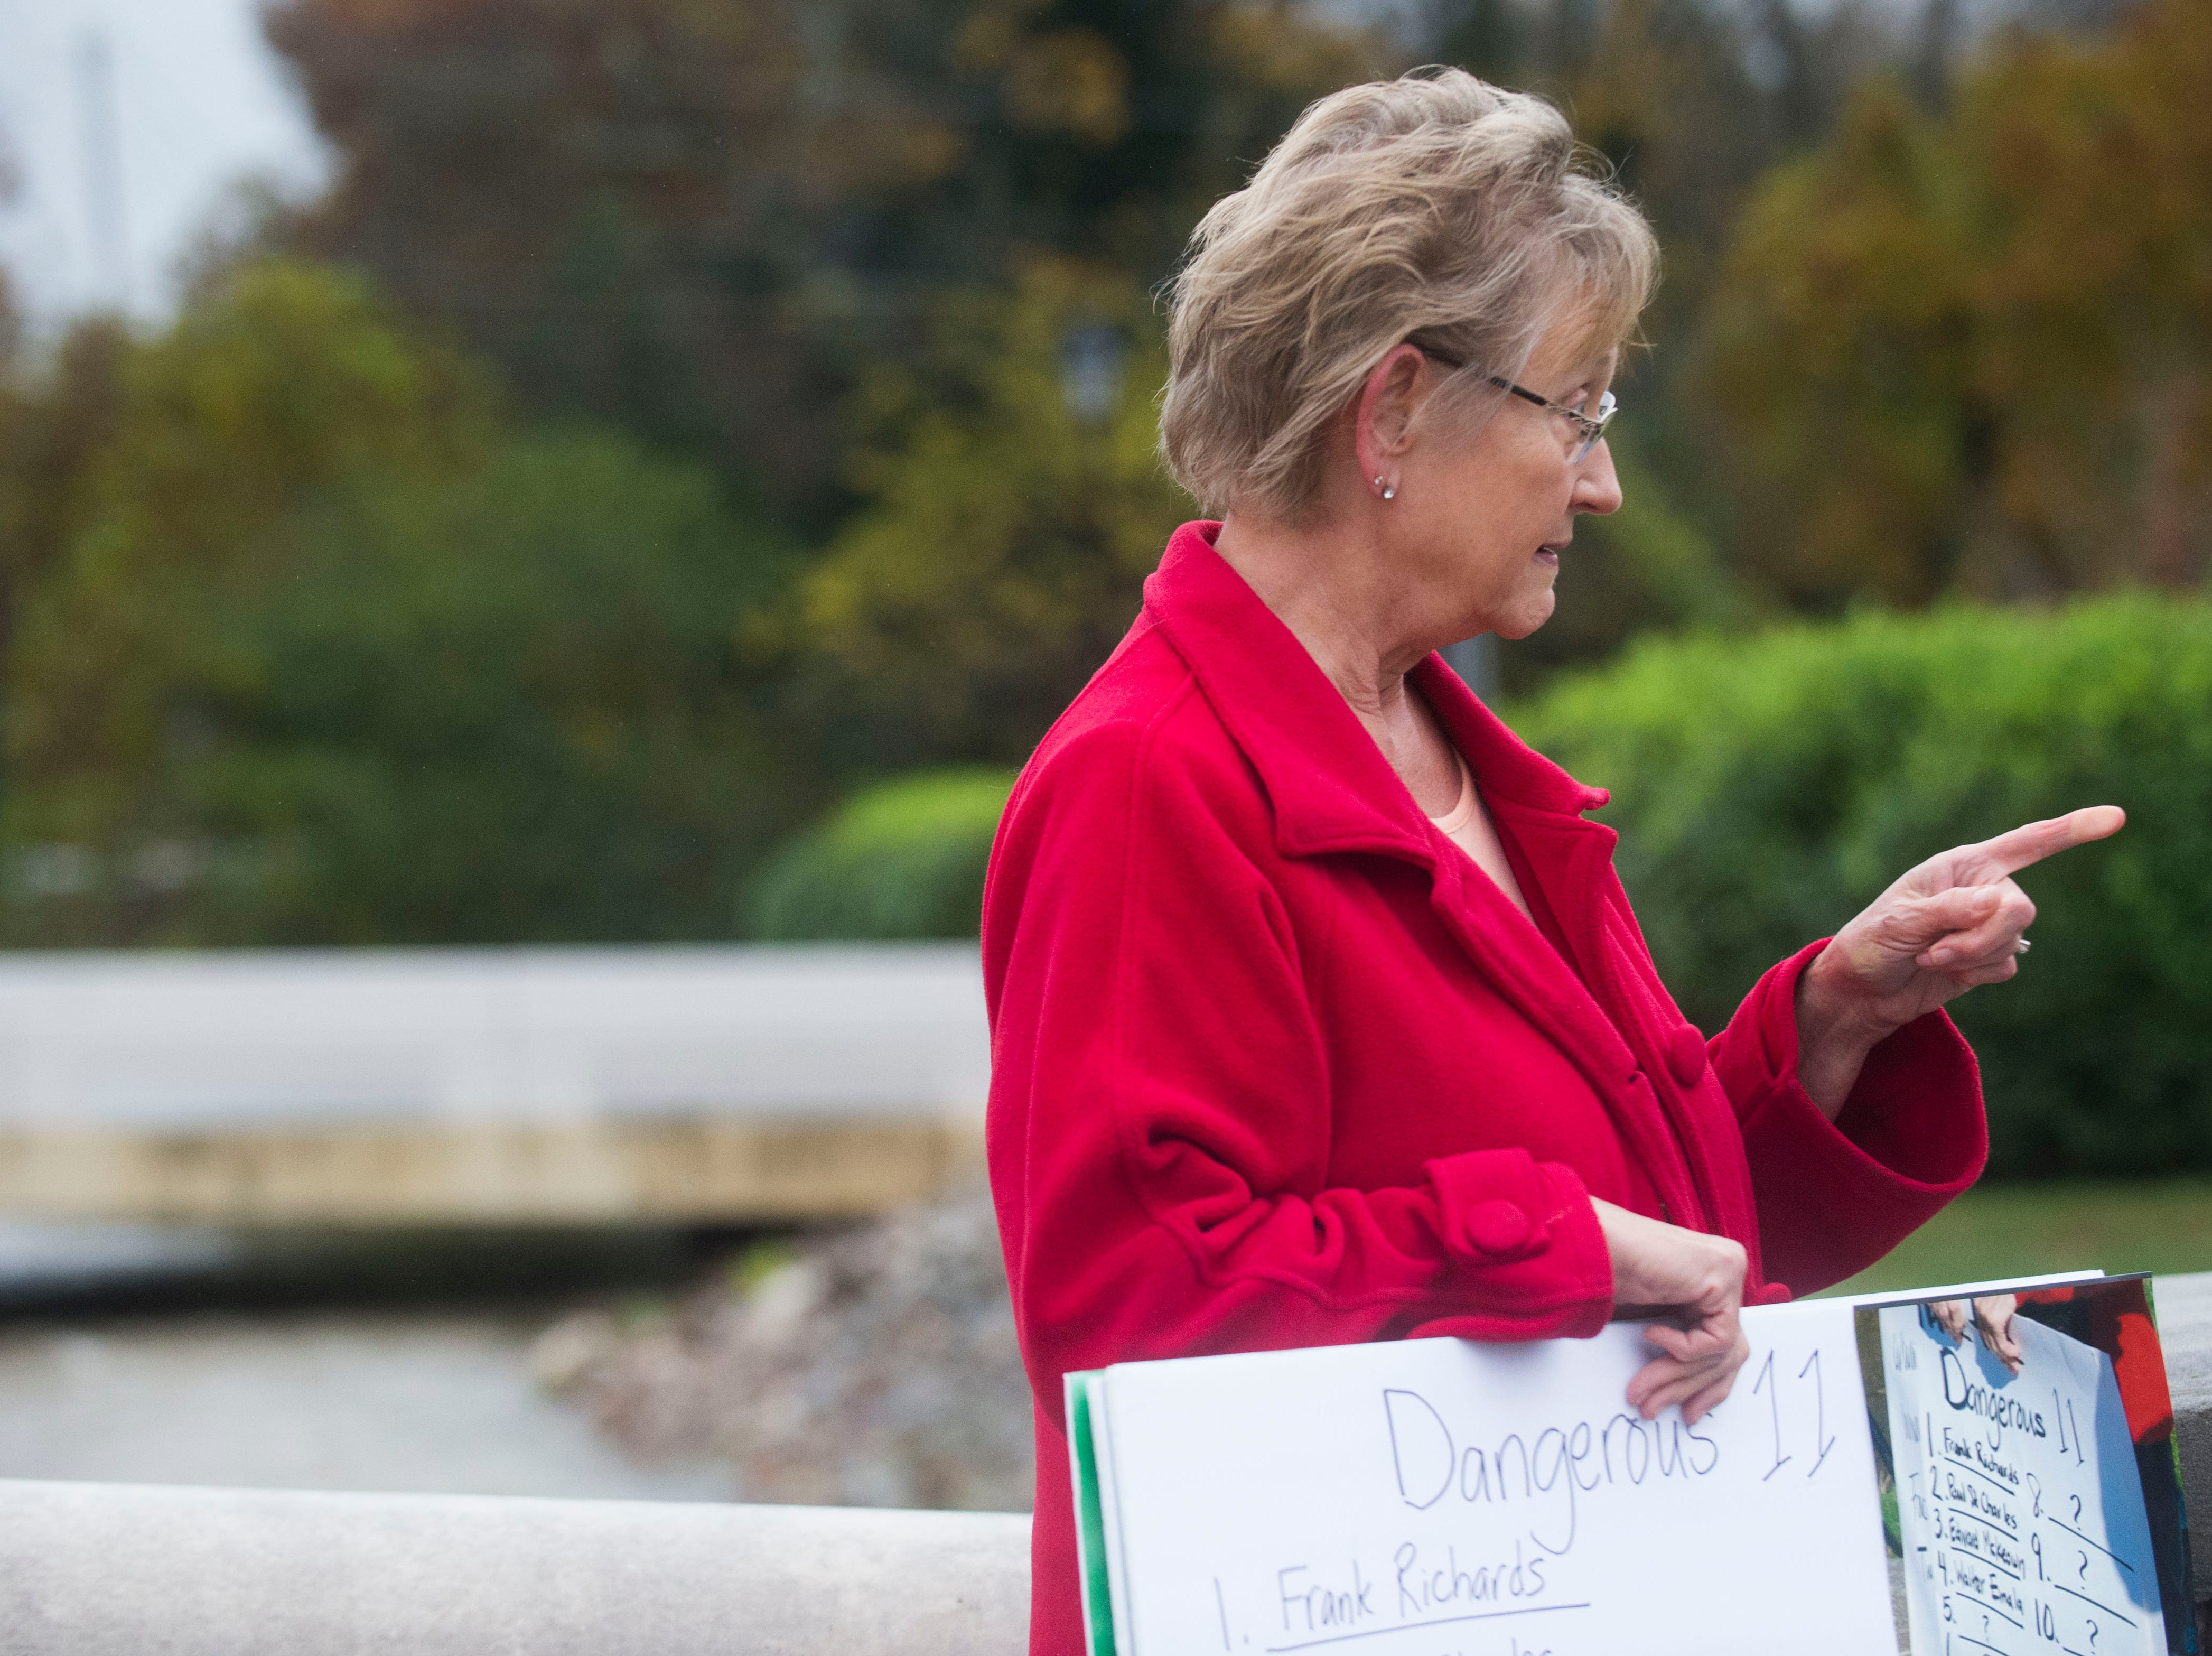 Susan Vance of the Survivors Network of those Abused by Priest, known as SNAP, speaks to the media about alleged Catholic clergy abuse in Tennessee, outside the Chancery Office of the Diocese of Knoxville, Friday, Nov. 9, 2018.